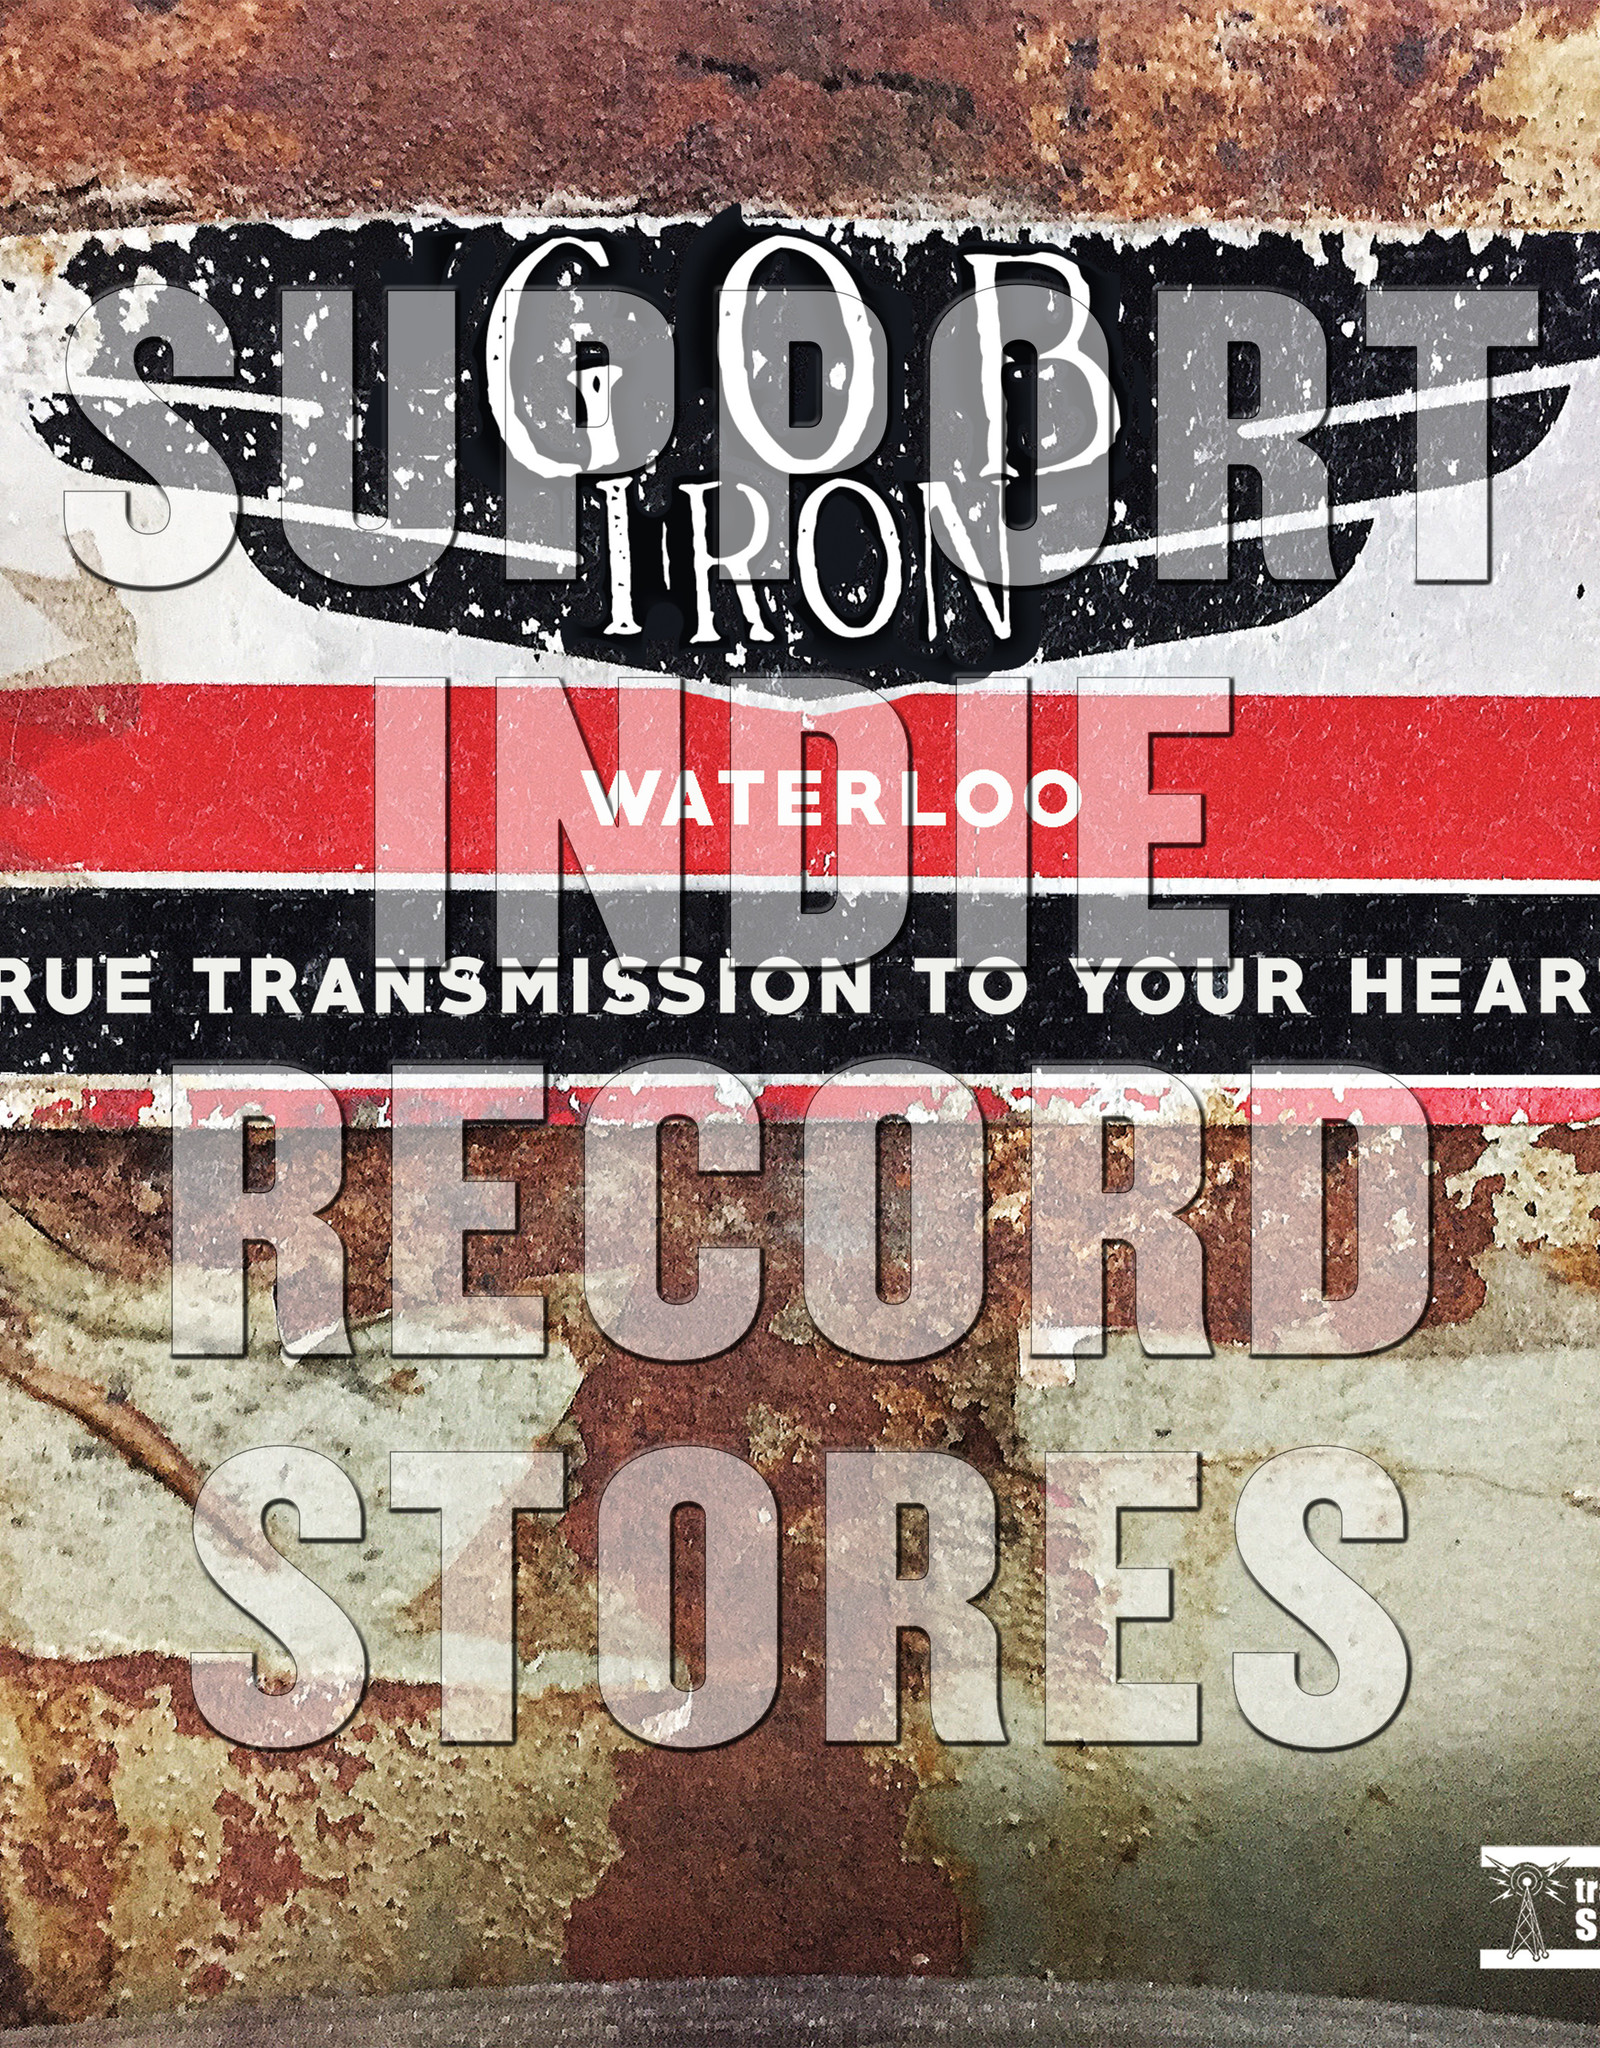 Gob Iron - Waterloo / True Transmission To Your Heart(RSD 2019)